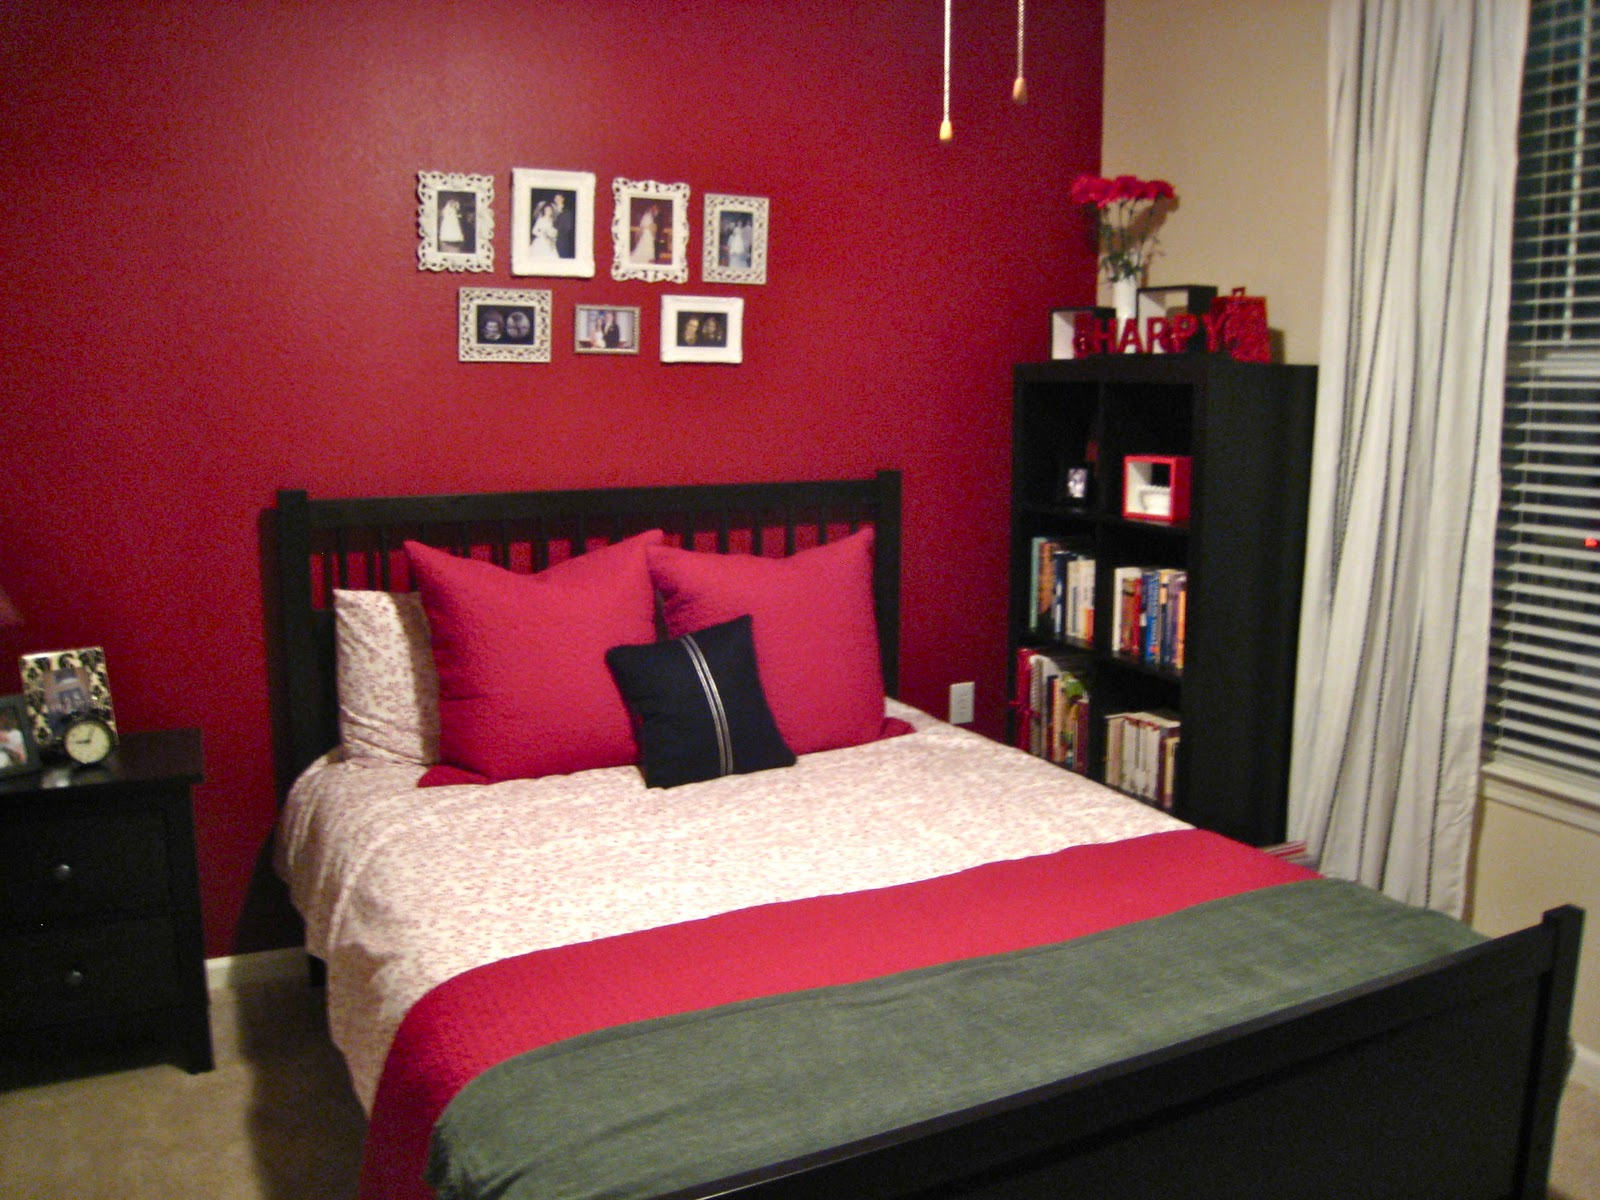 bedroom-interior-engaging-cool-bedroom-ideas-with-red-matte-painted-wall-combination-with-light-pink-painted-wall-astounding-cool-bedroom-wall-design-ideas-for-your-elegant-home-l